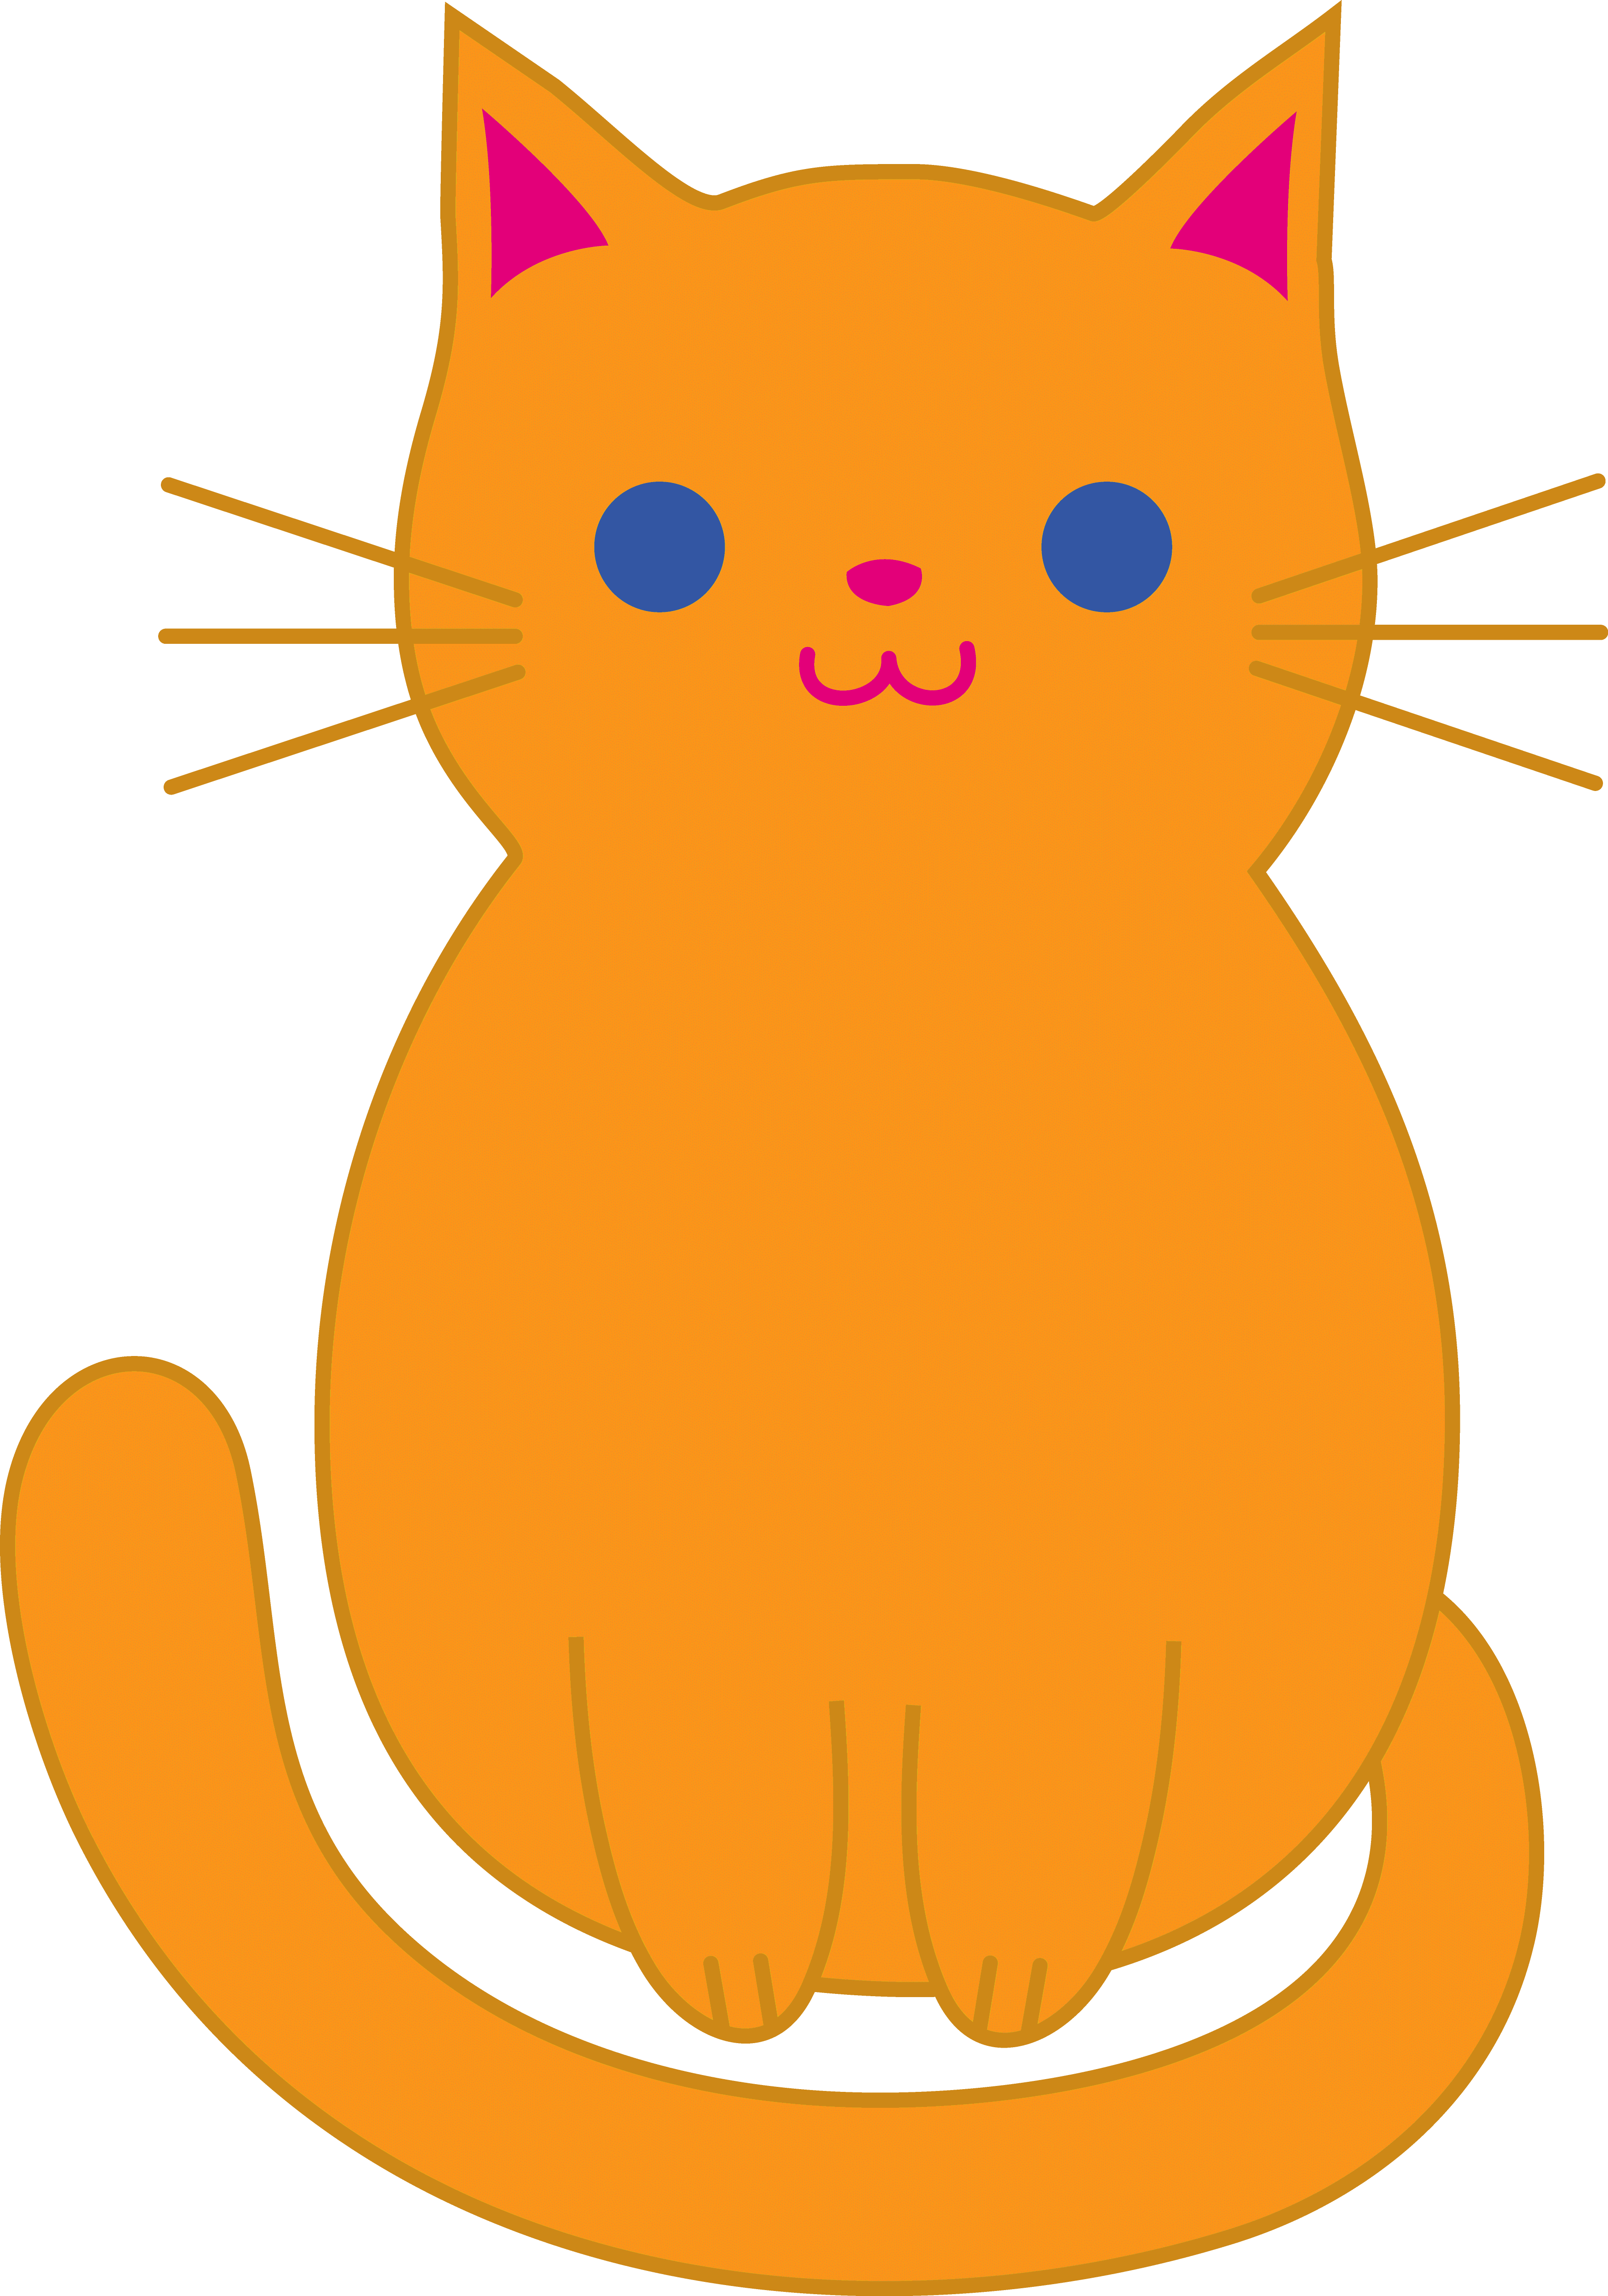 Awww image group cat. Galaxy clipart category